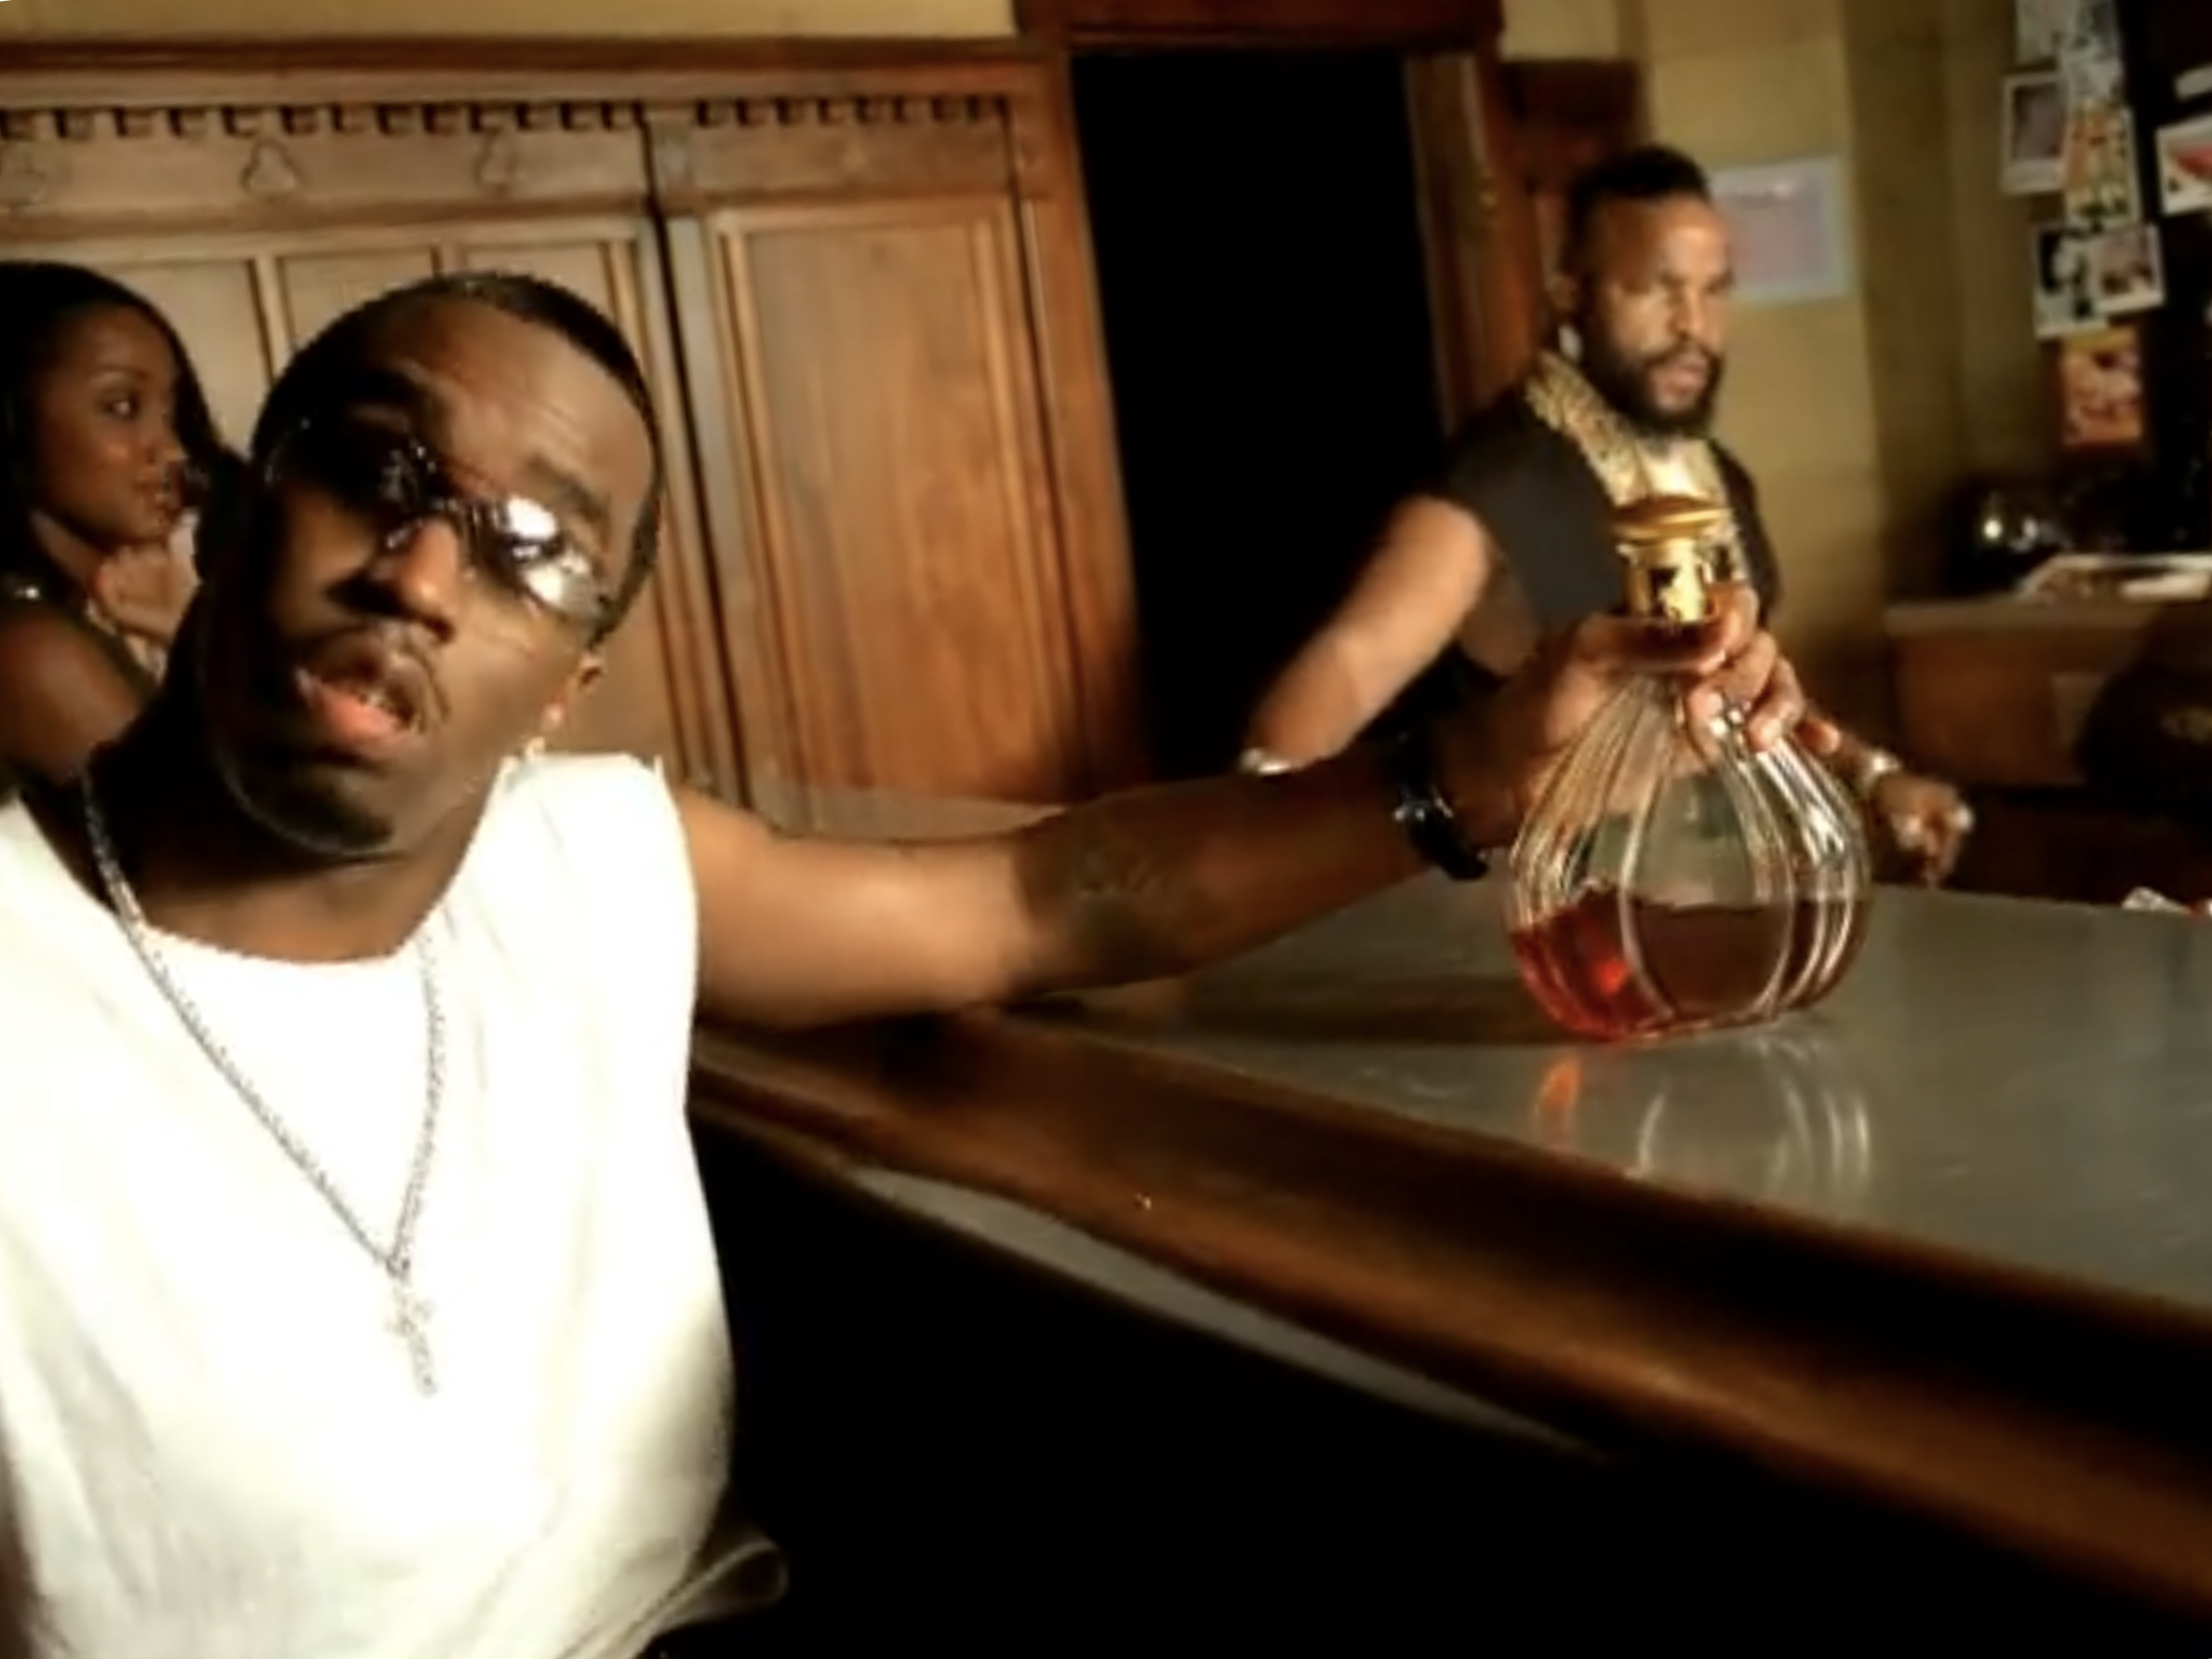 Busta Rhymes Feat. P. Diddy & Pharrell: Pass the Courvoisier, Part II (2002)